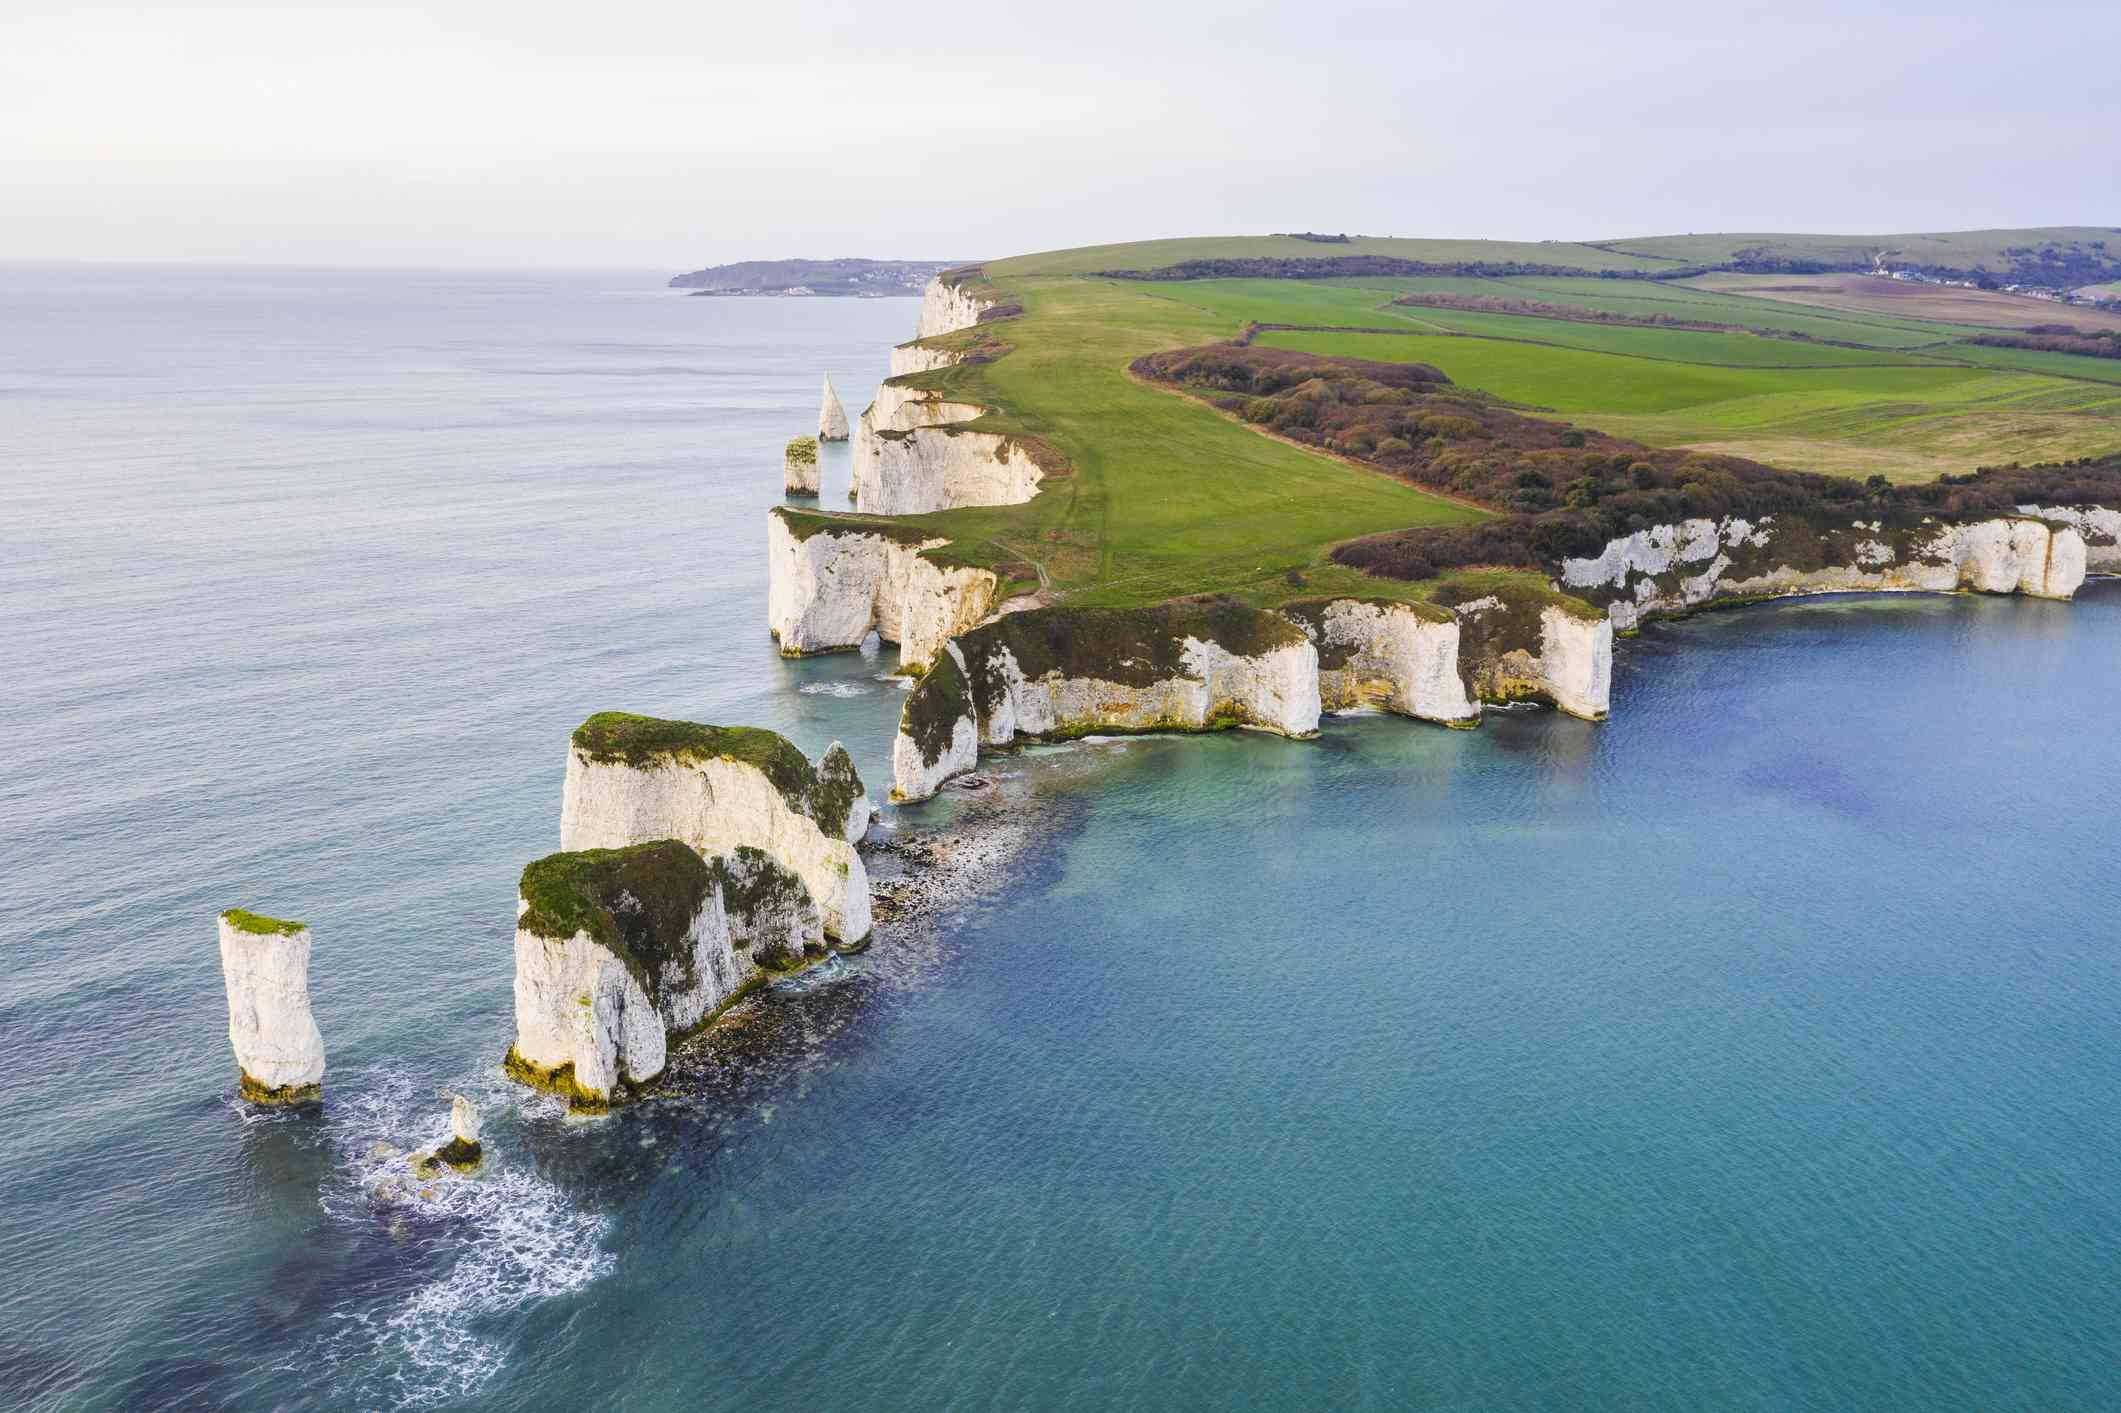 Aerial view of Old Harry Rocks, Dorset, England